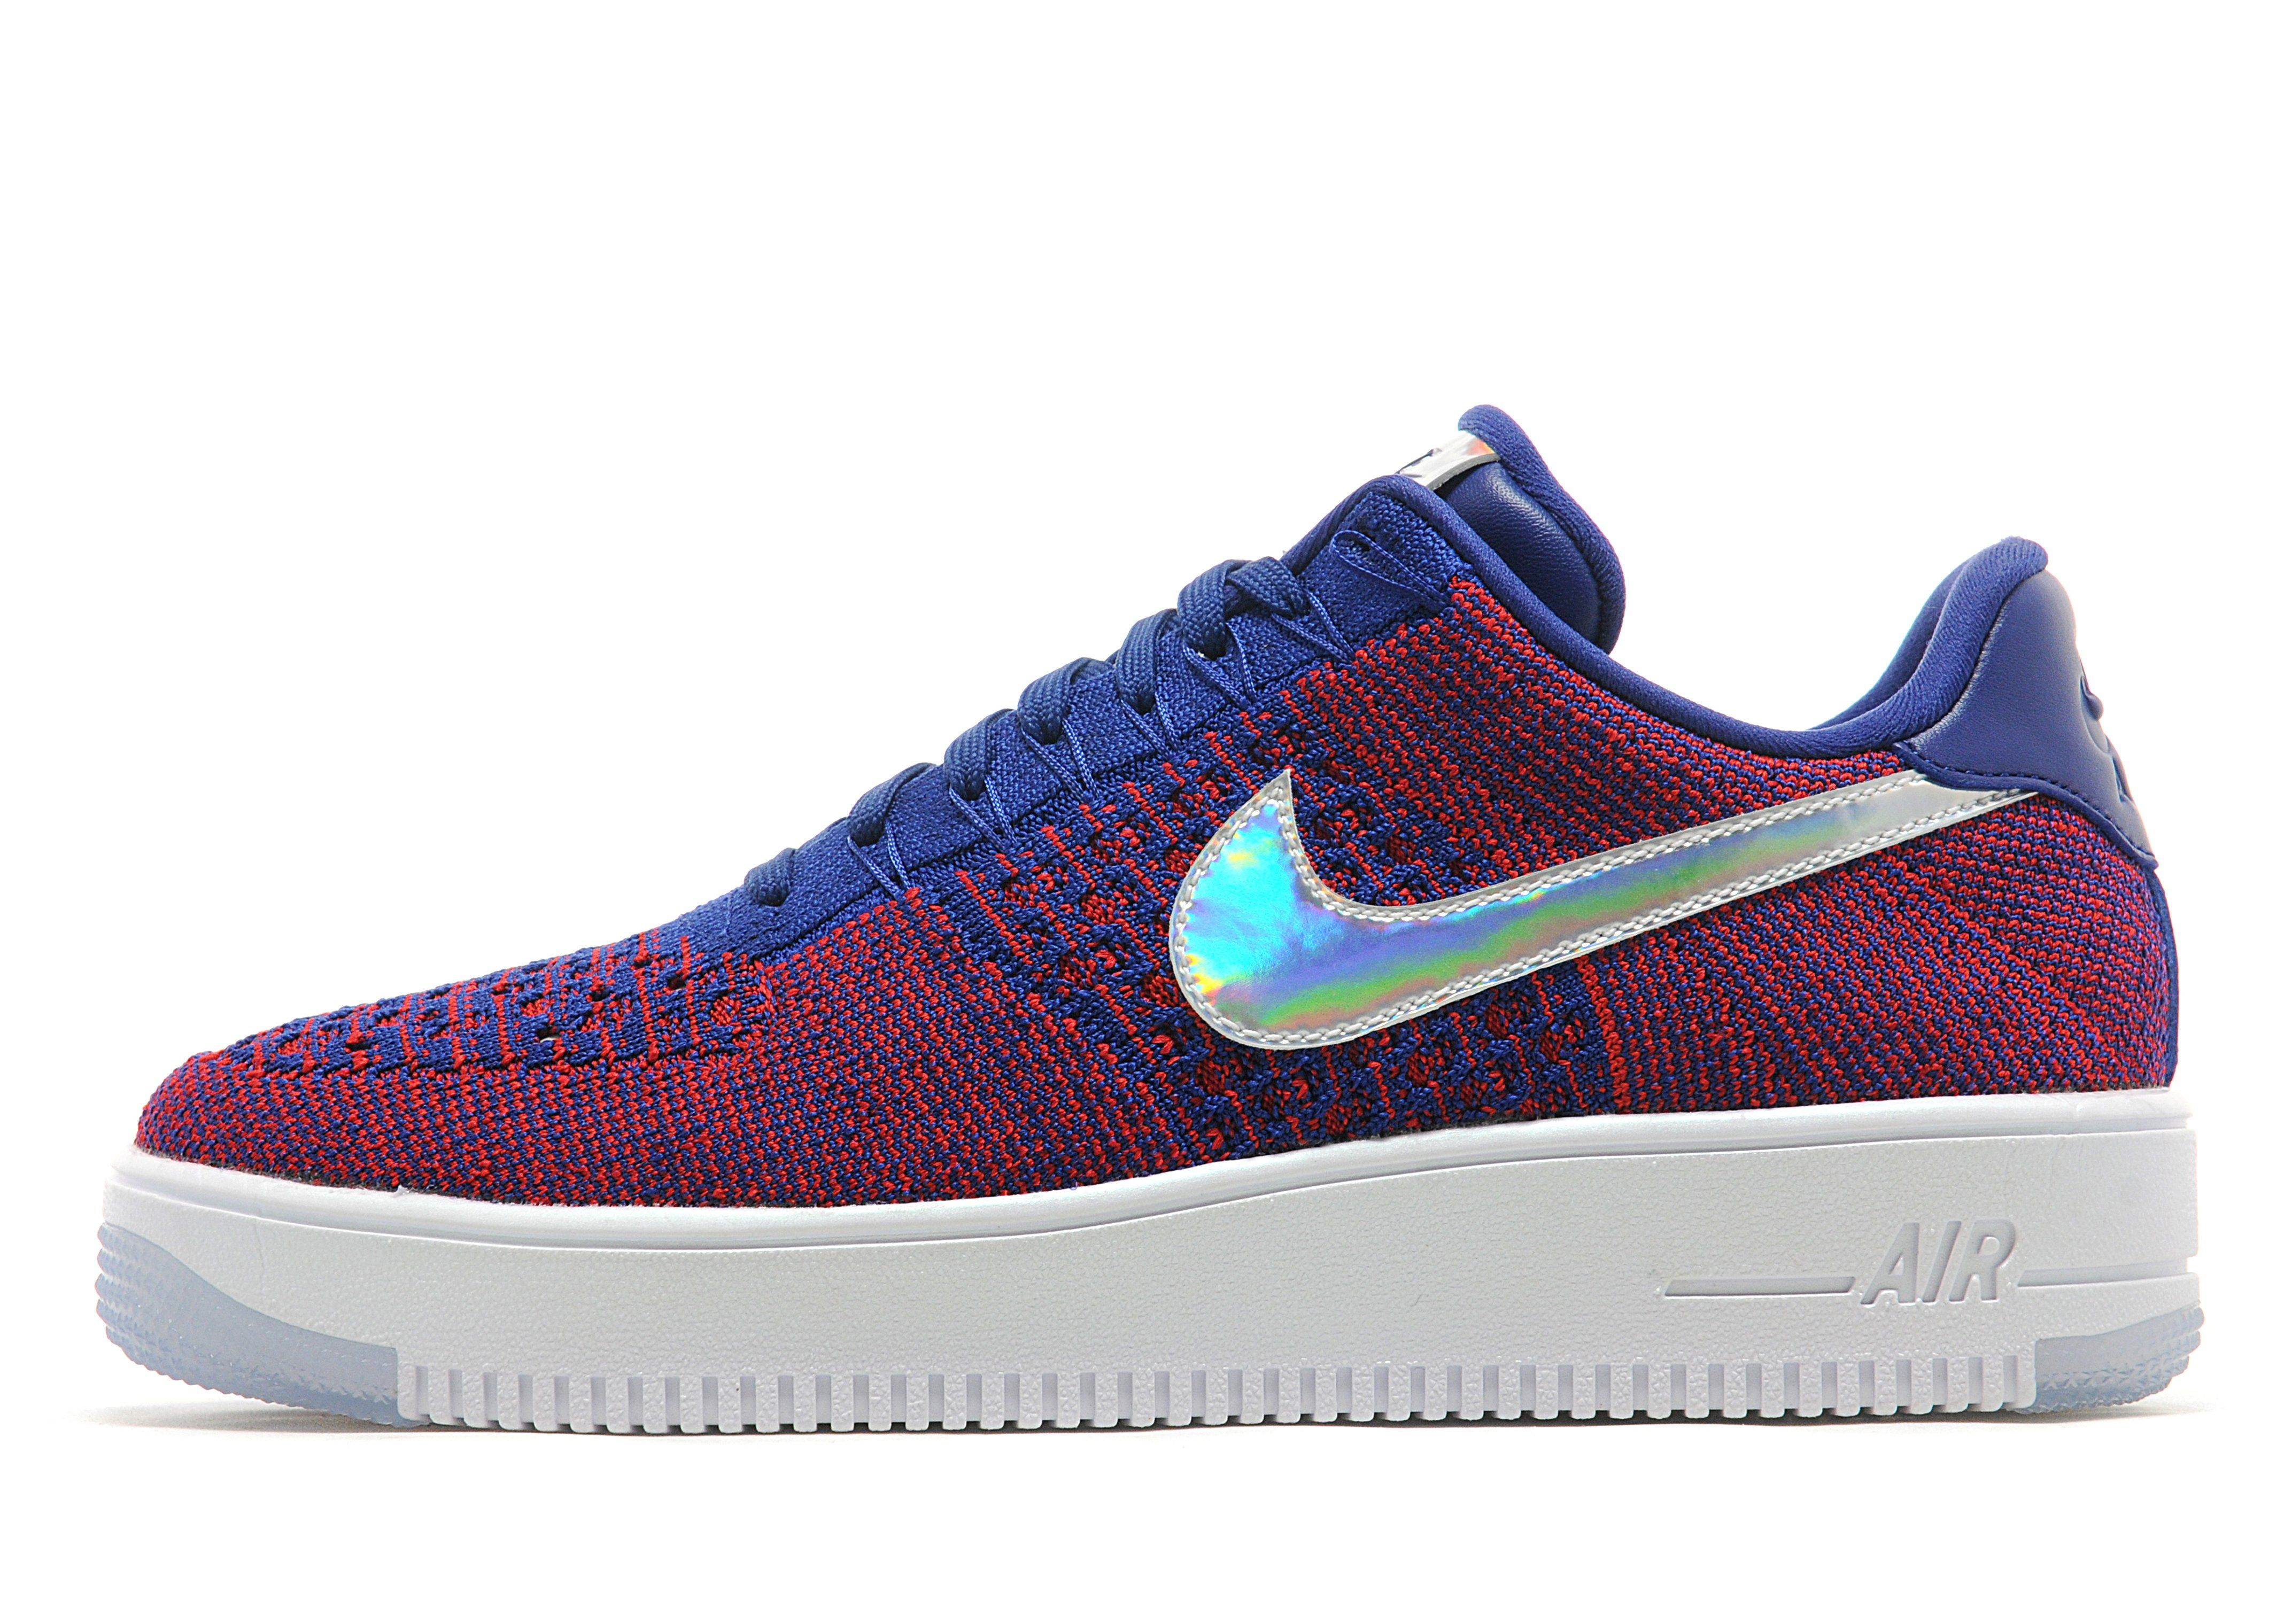 newest d23ac 795e8 70%OFF Nike Air Force 1 Flyknit Low   JD Sports